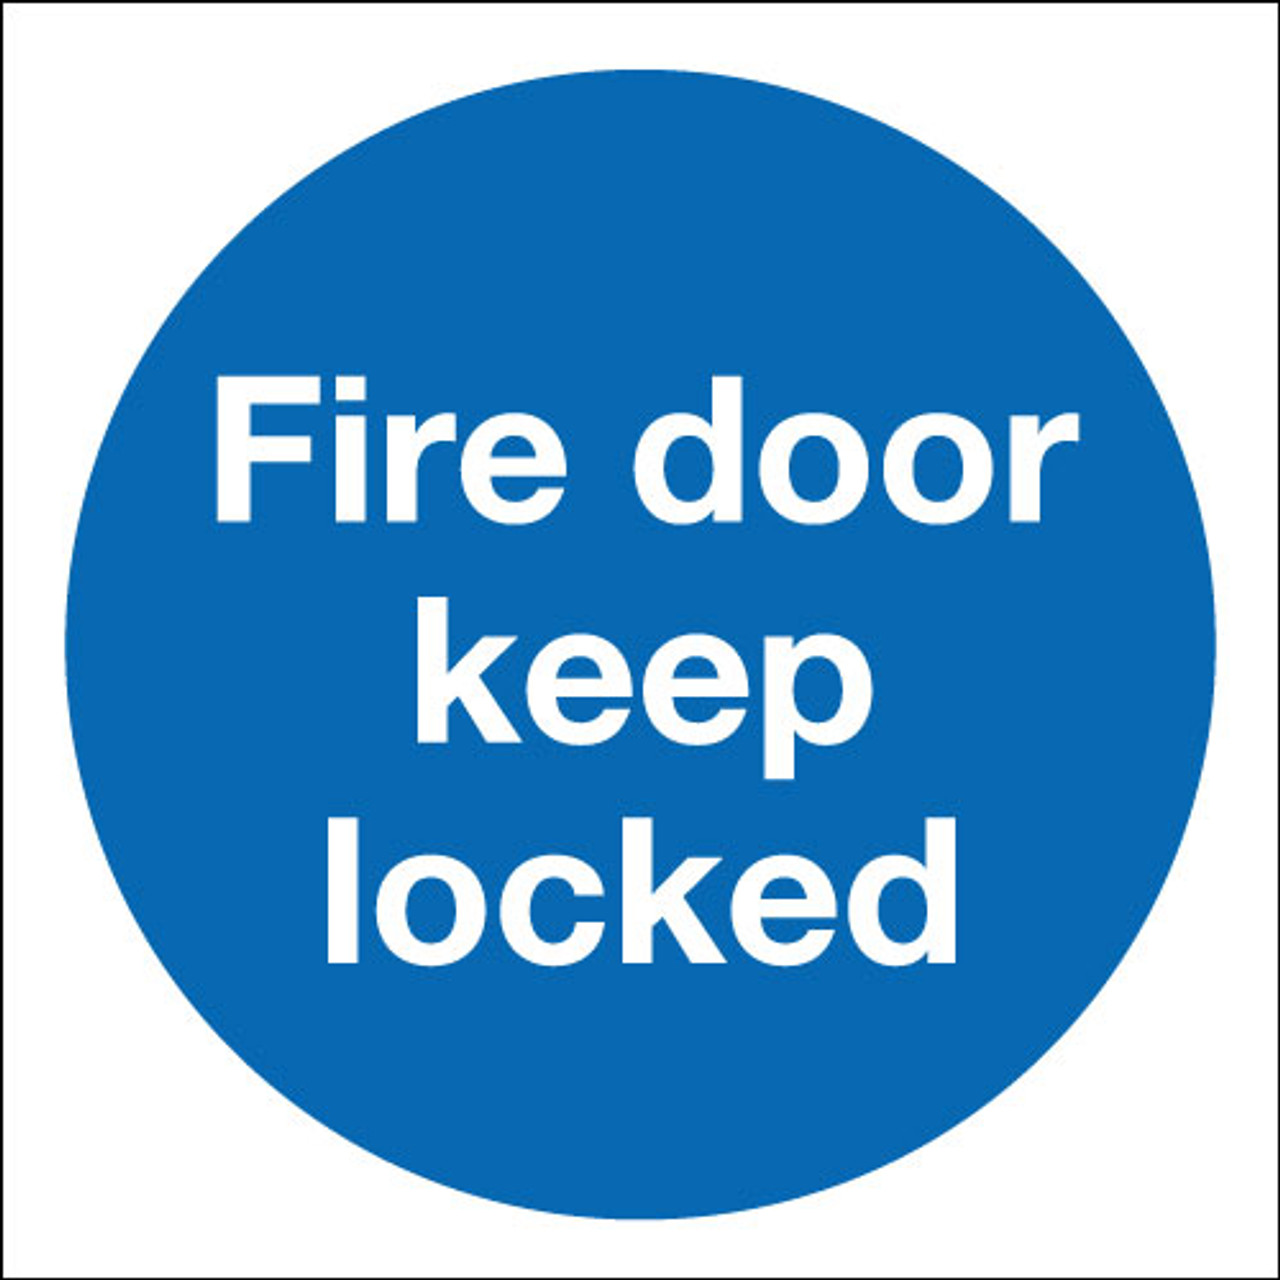 Fire door keep locked sign